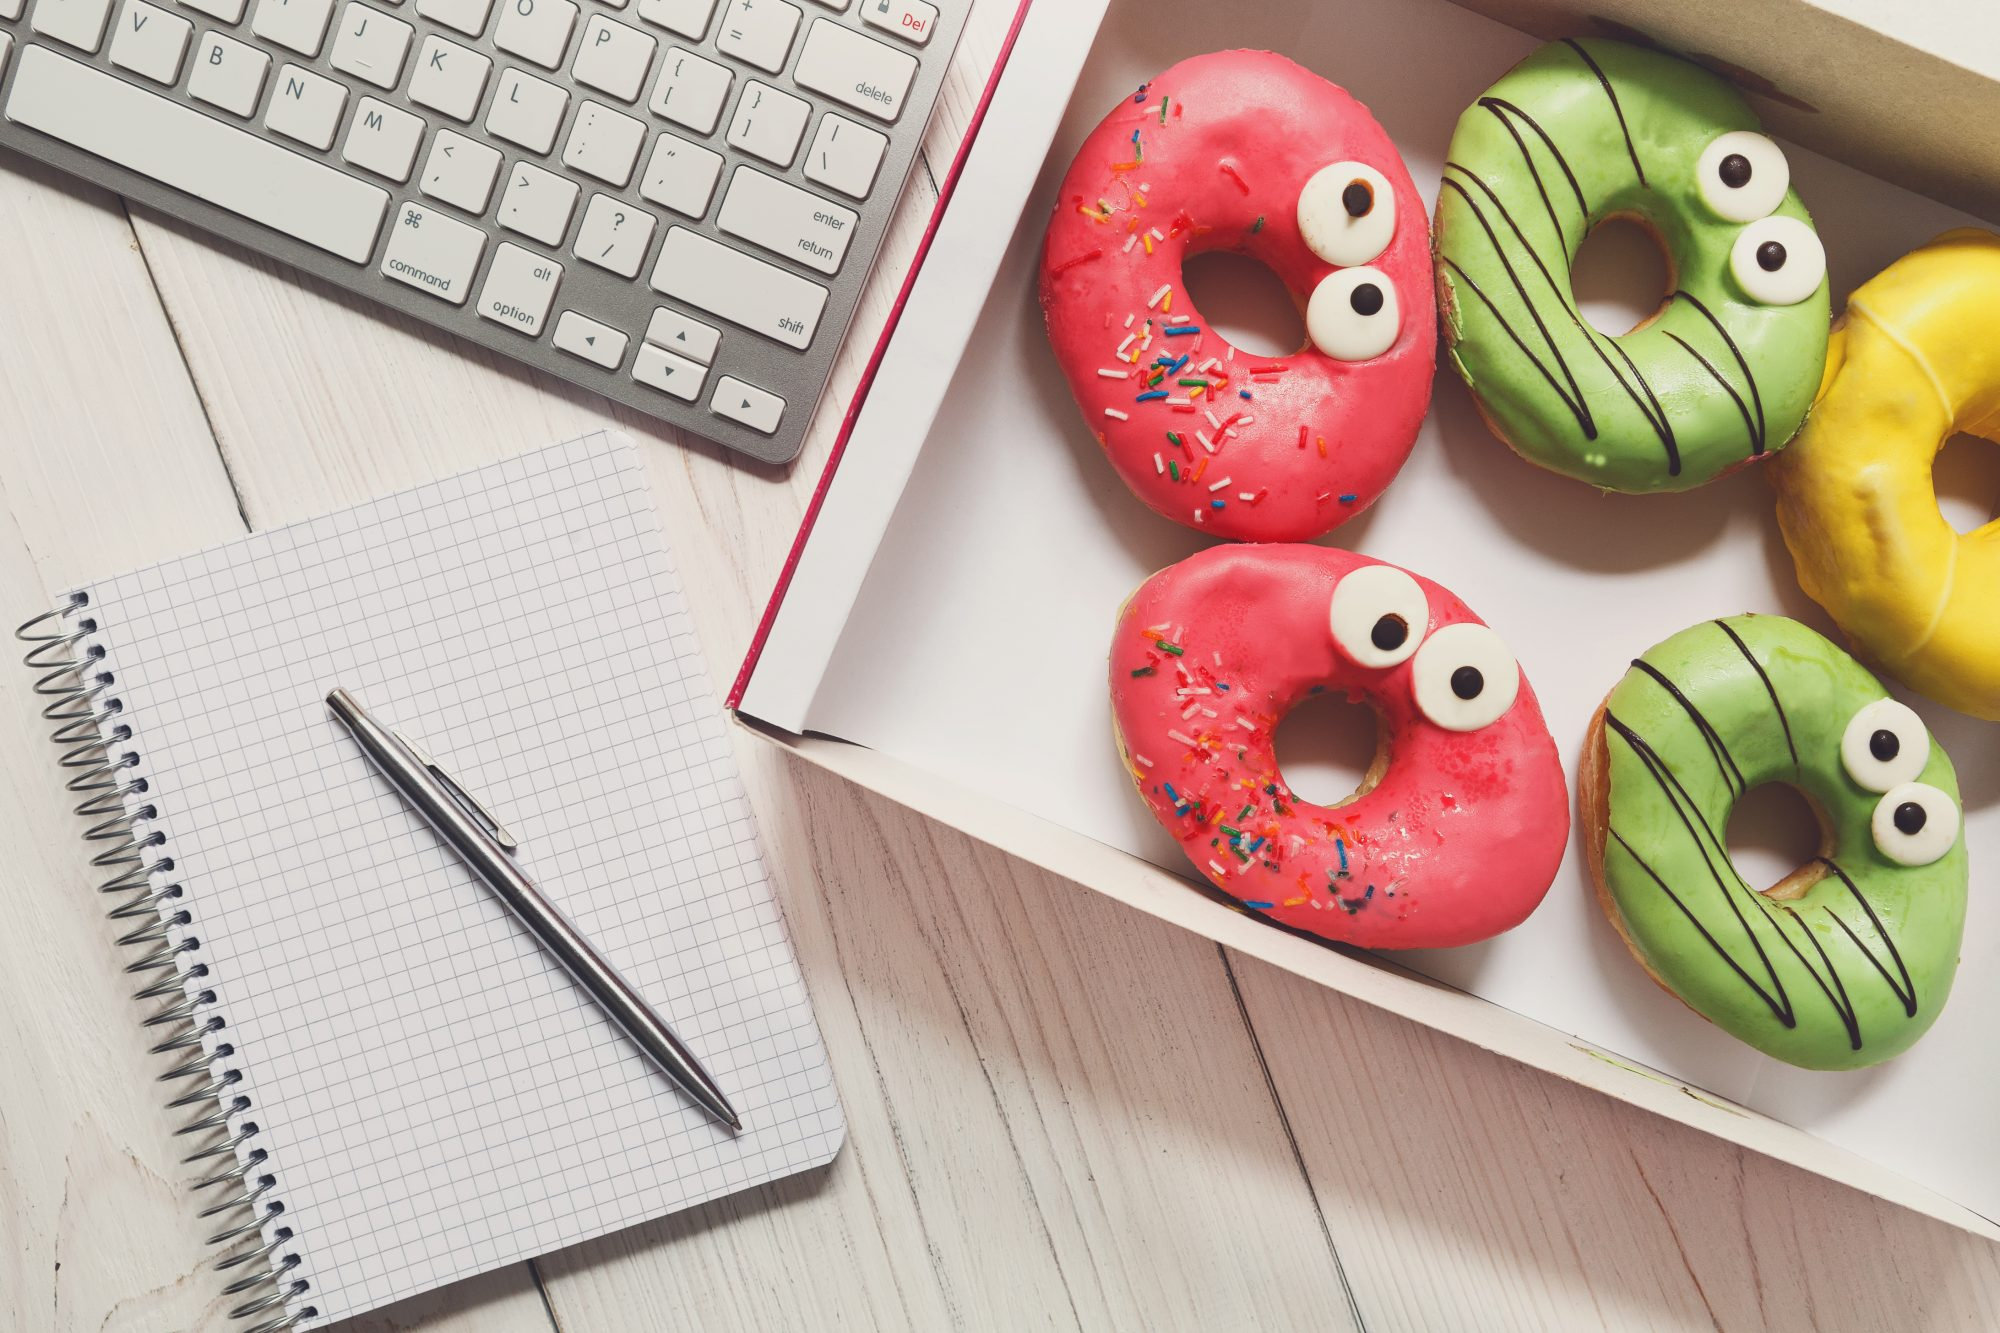 donut-office-sweet-temptation